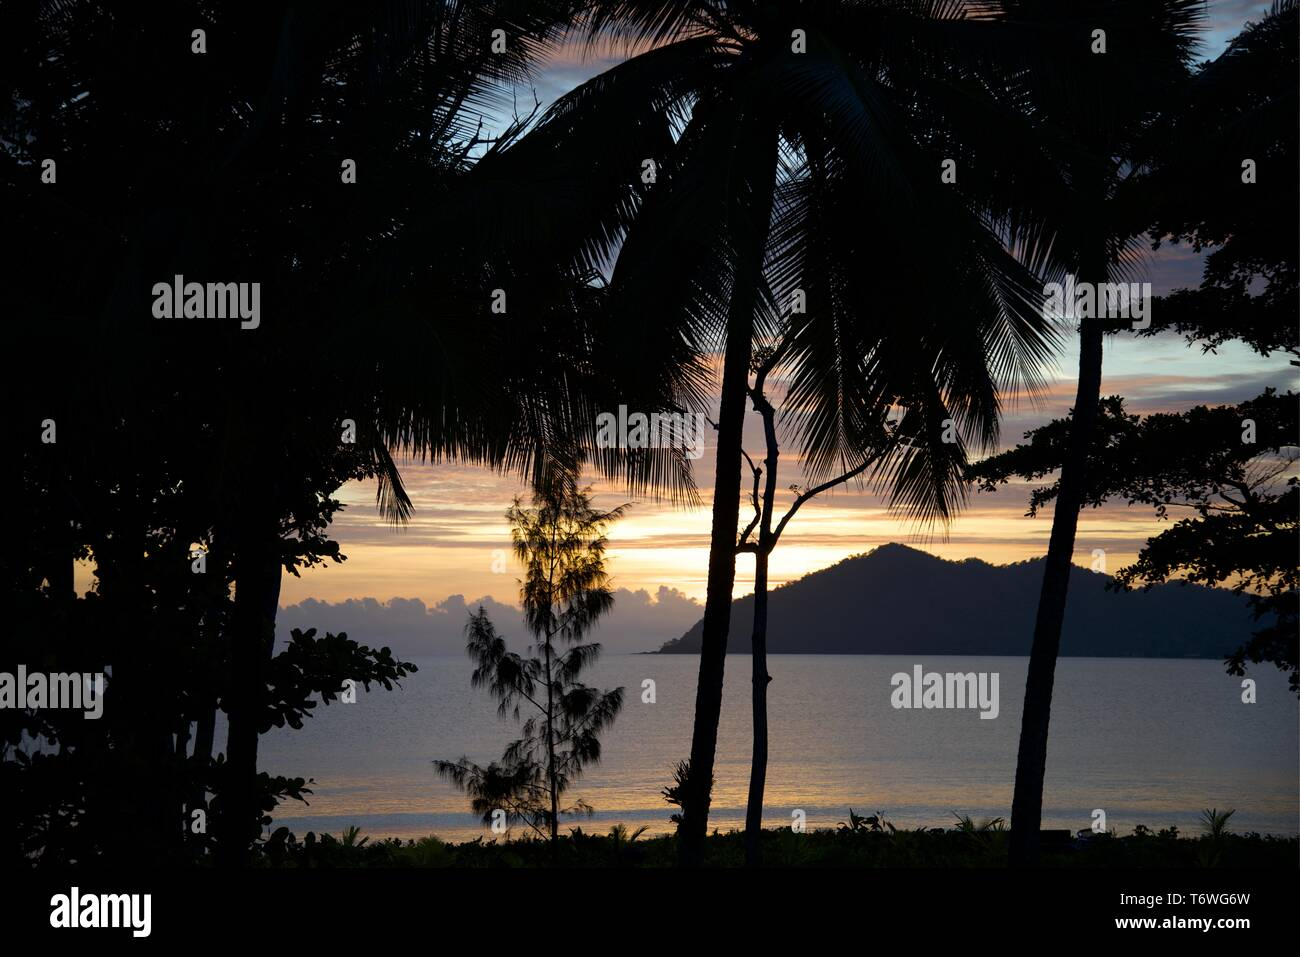 Early Morning Sunrise on Australia's Great Barrier Reef with Dunk Isl - Stock Image